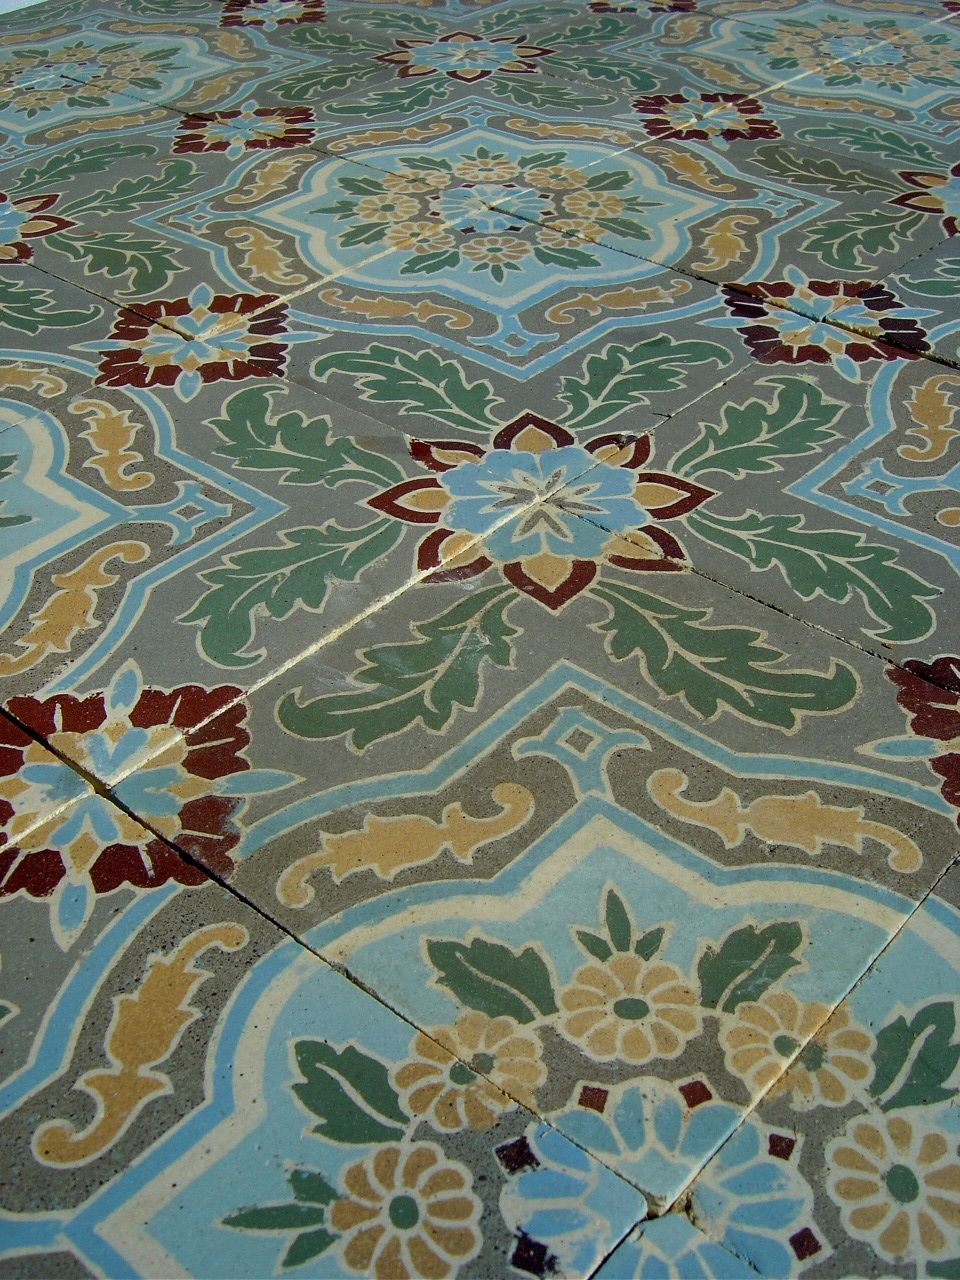 17.5m2 / 190 sq ft Exquisite antique Belgian ceramic